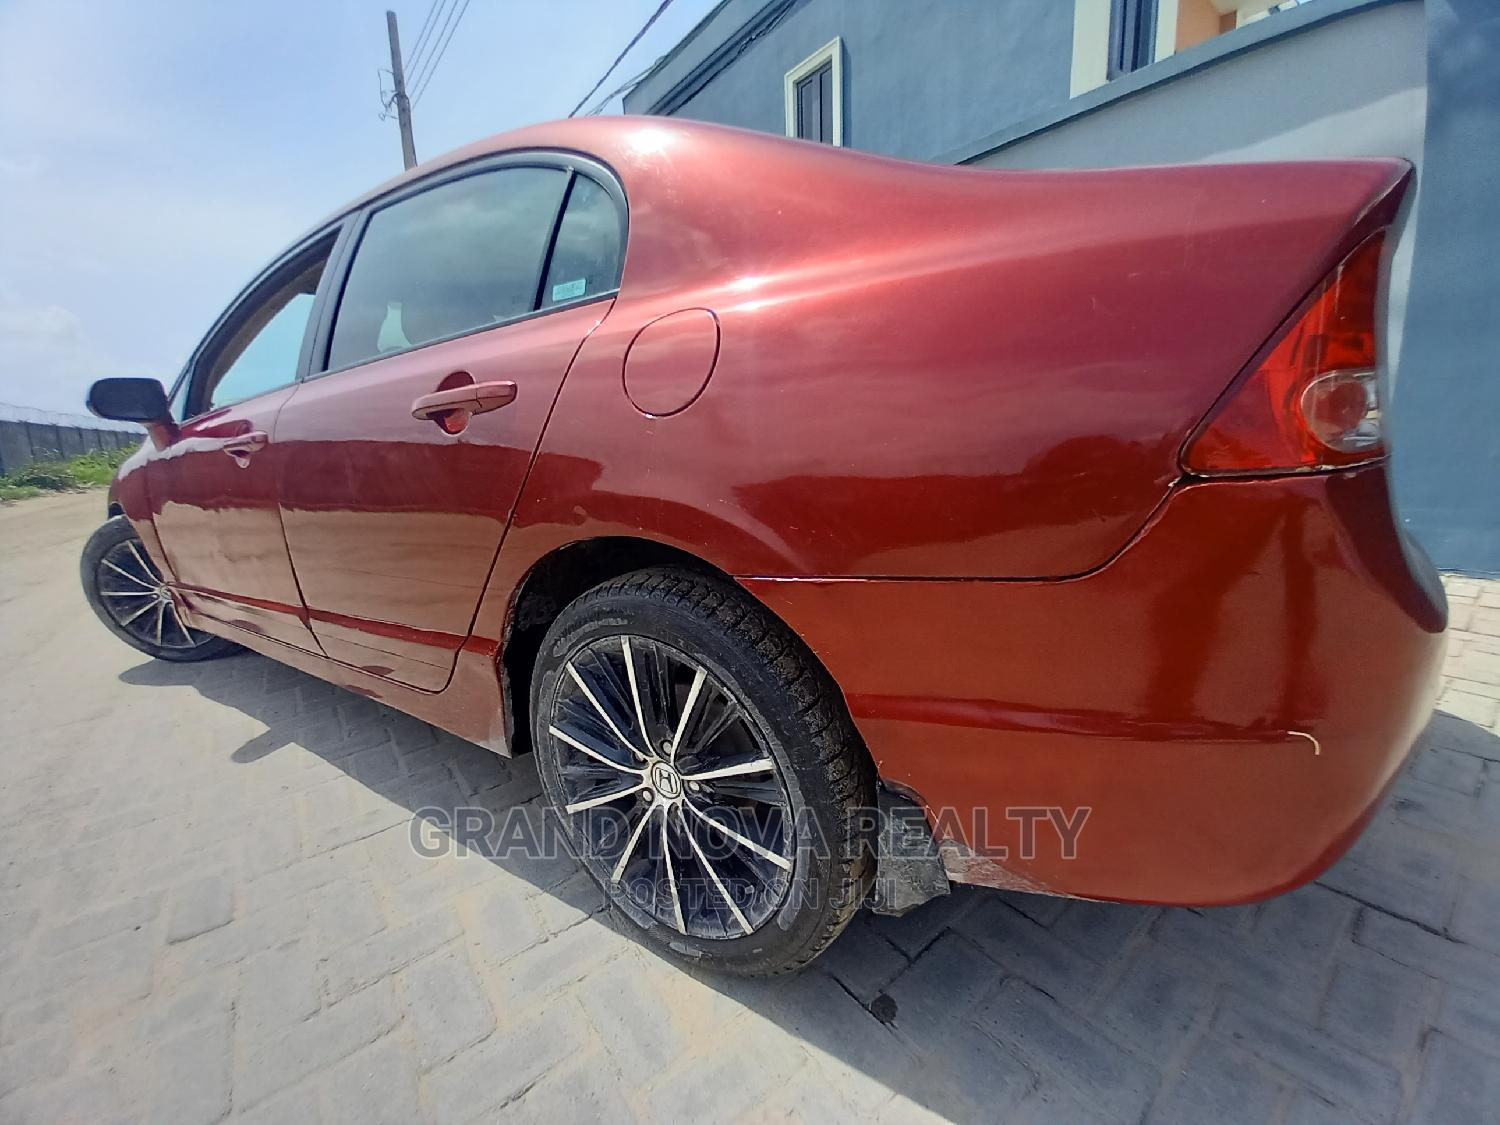 Archive: Honda Civic 2006 1.8 Coupe DX Automatic Red